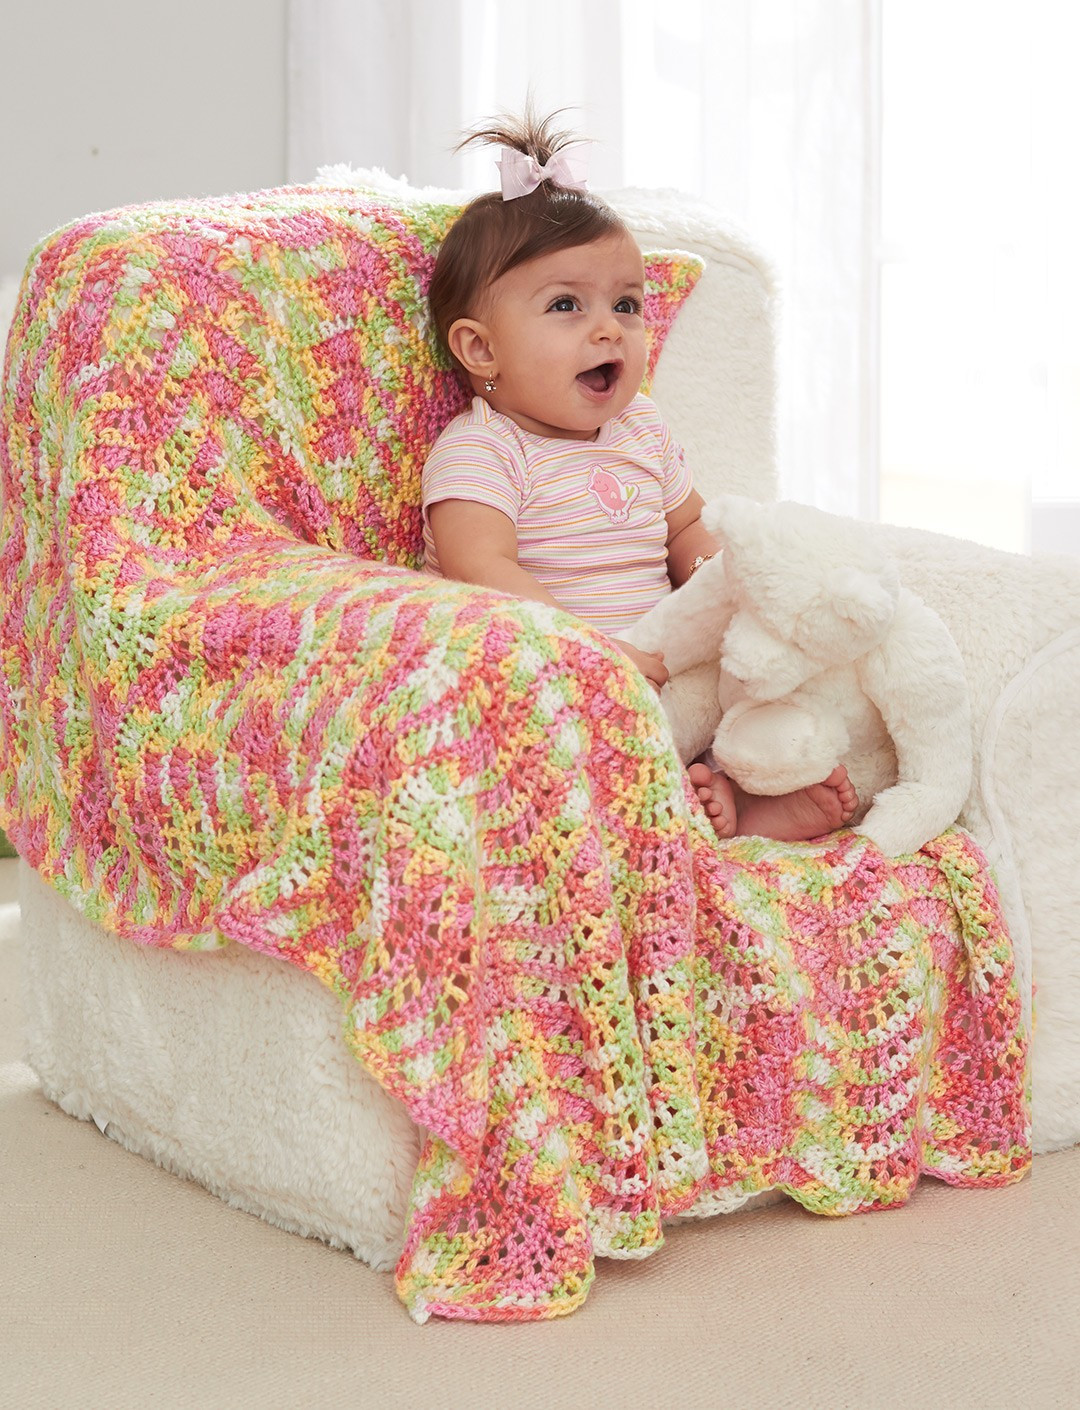 Best Of Caron Baby Waves Blanket Crochet Pattern Caron Crochet Patterns Of Perfect 43 Pictures Caron Crochet Patterns